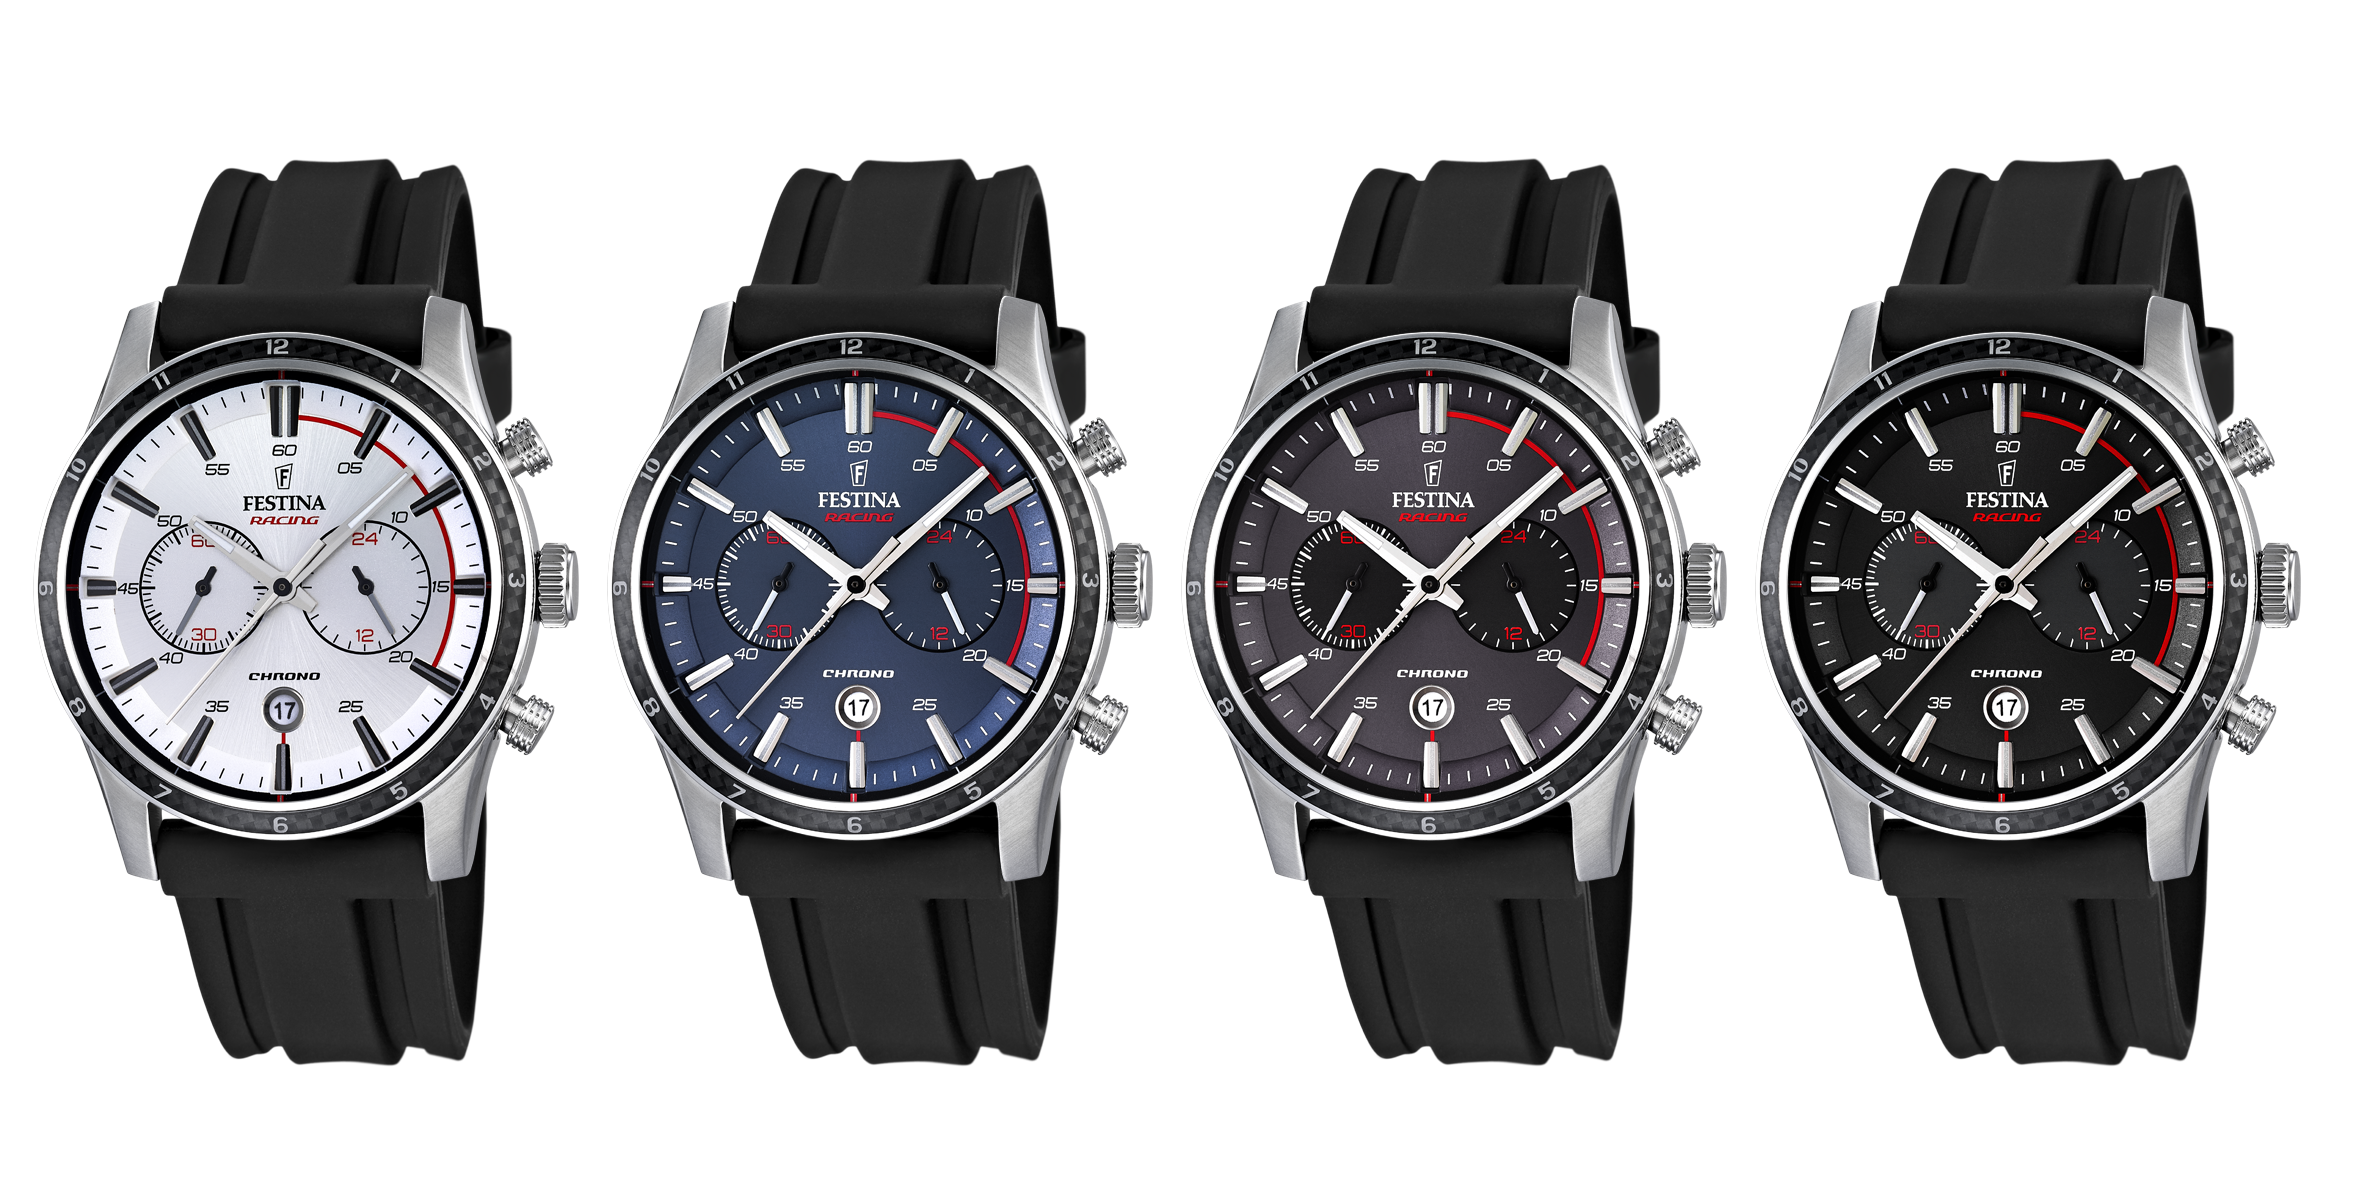 festina launches commemorative chronograph collection for. Black Bedroom Furniture Sets. Home Design Ideas